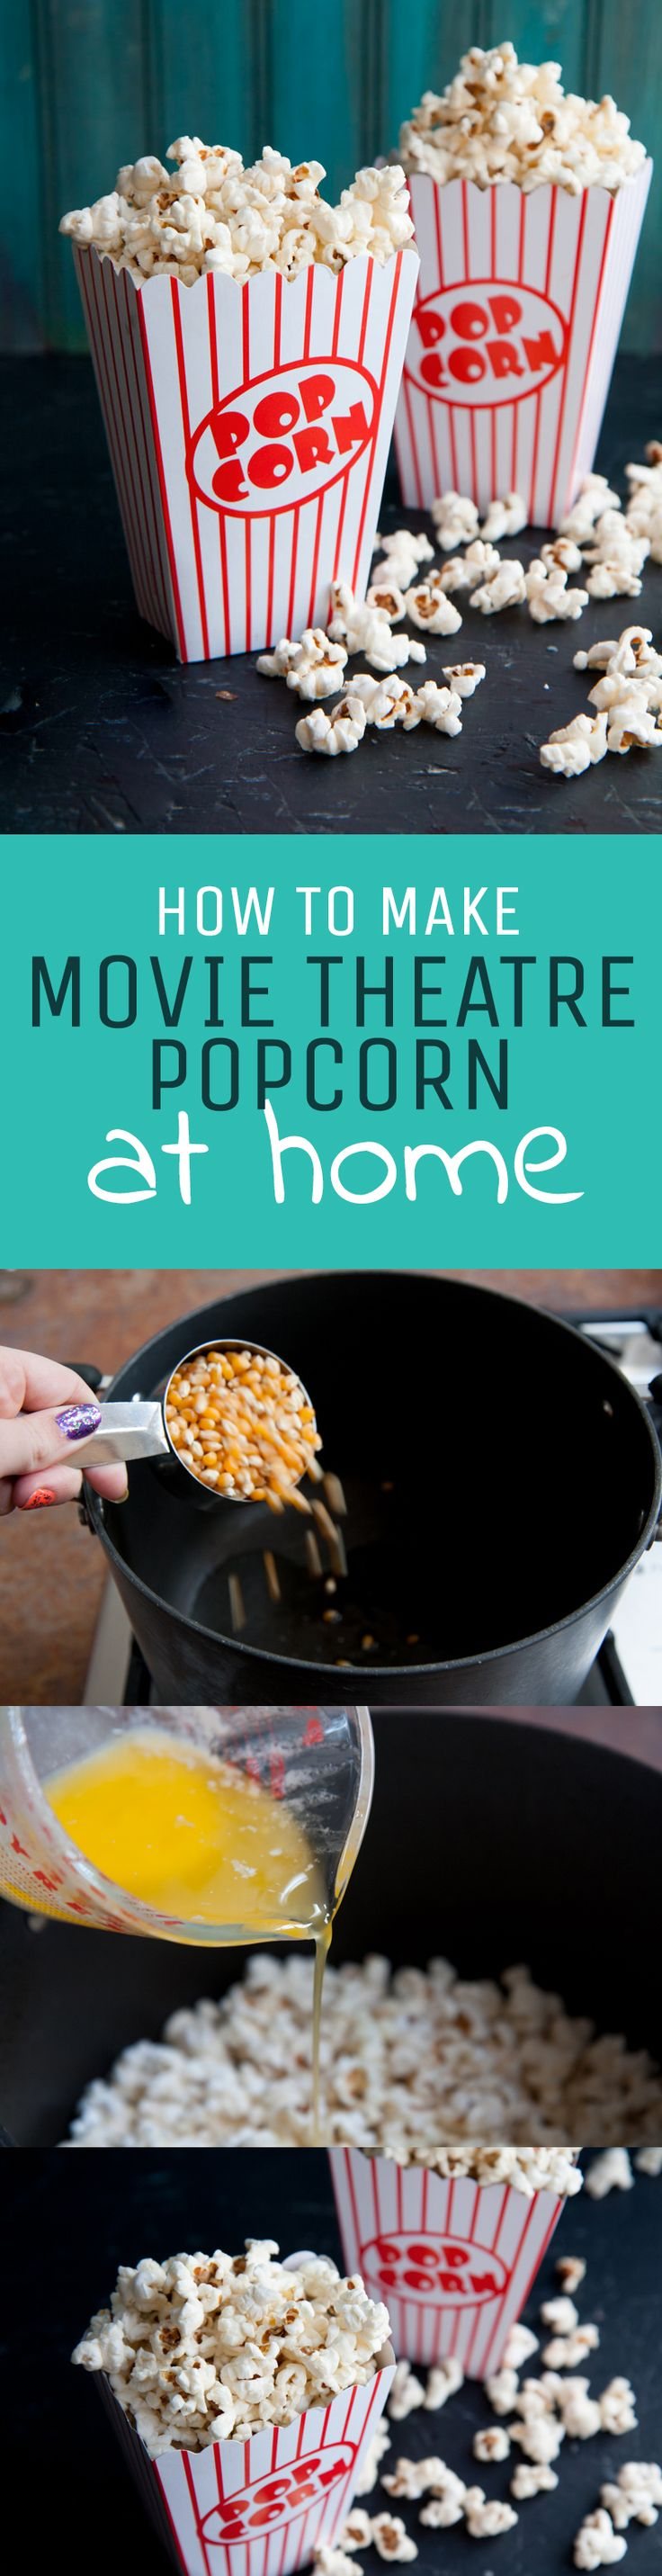 Making movie-theater popcorn at home!